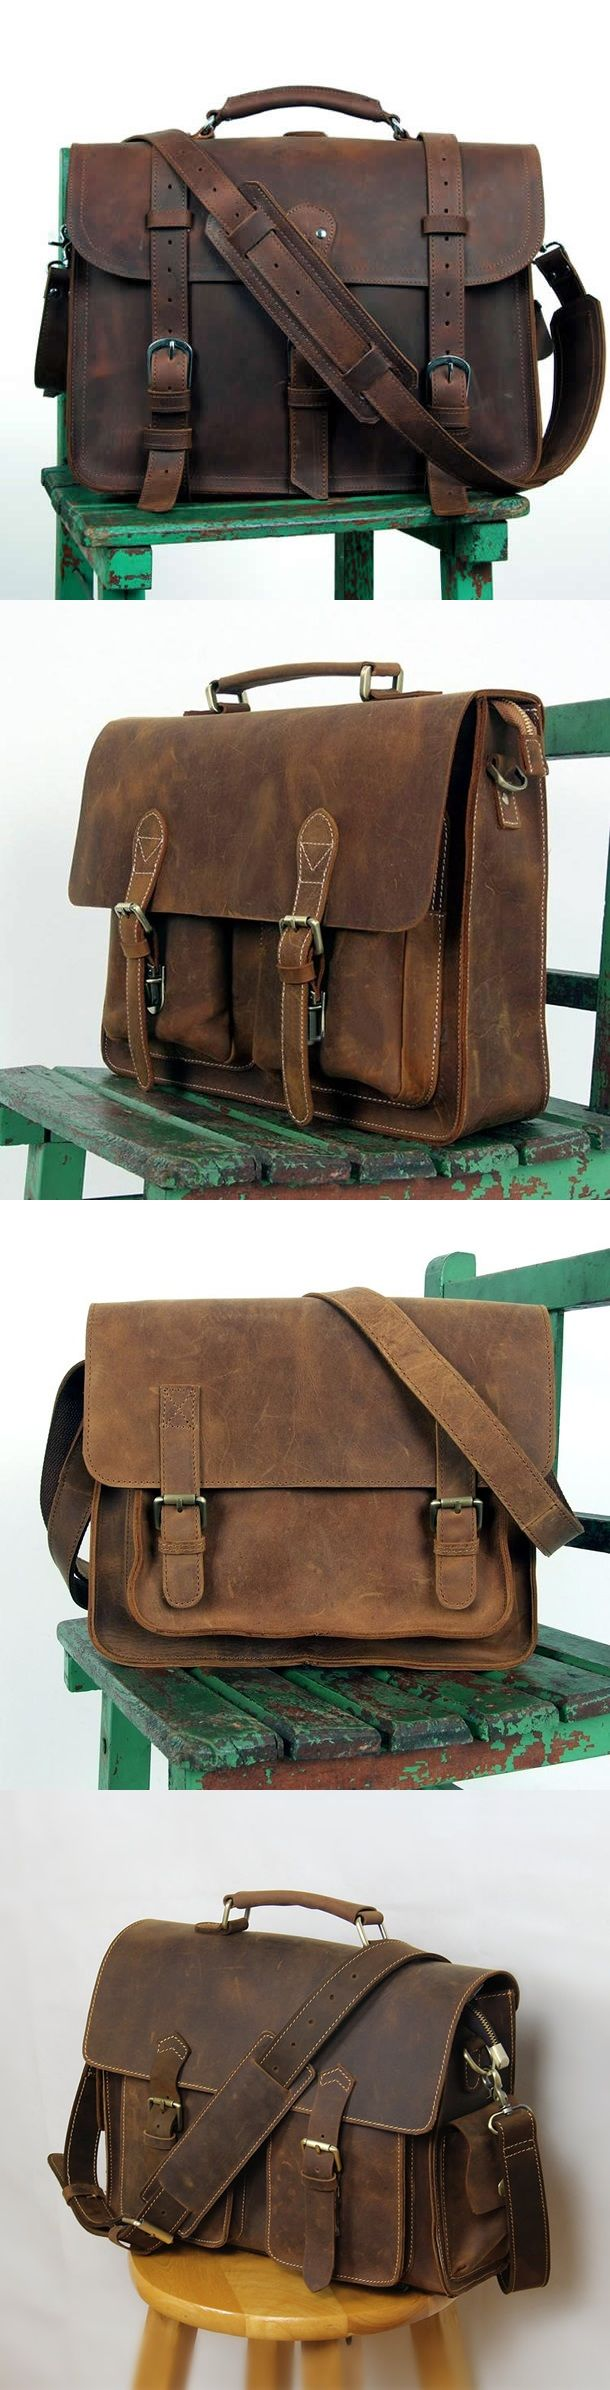 This handmade leather bag is made with selected materials. The properties of Antique Crazy Horse leather and vintage design make this item unique.  All hand stitched, works excellent.  A truly one of a kind item!  Material: Antique Crazy Horse leather from Italy; durable cotton fabric lining; bro